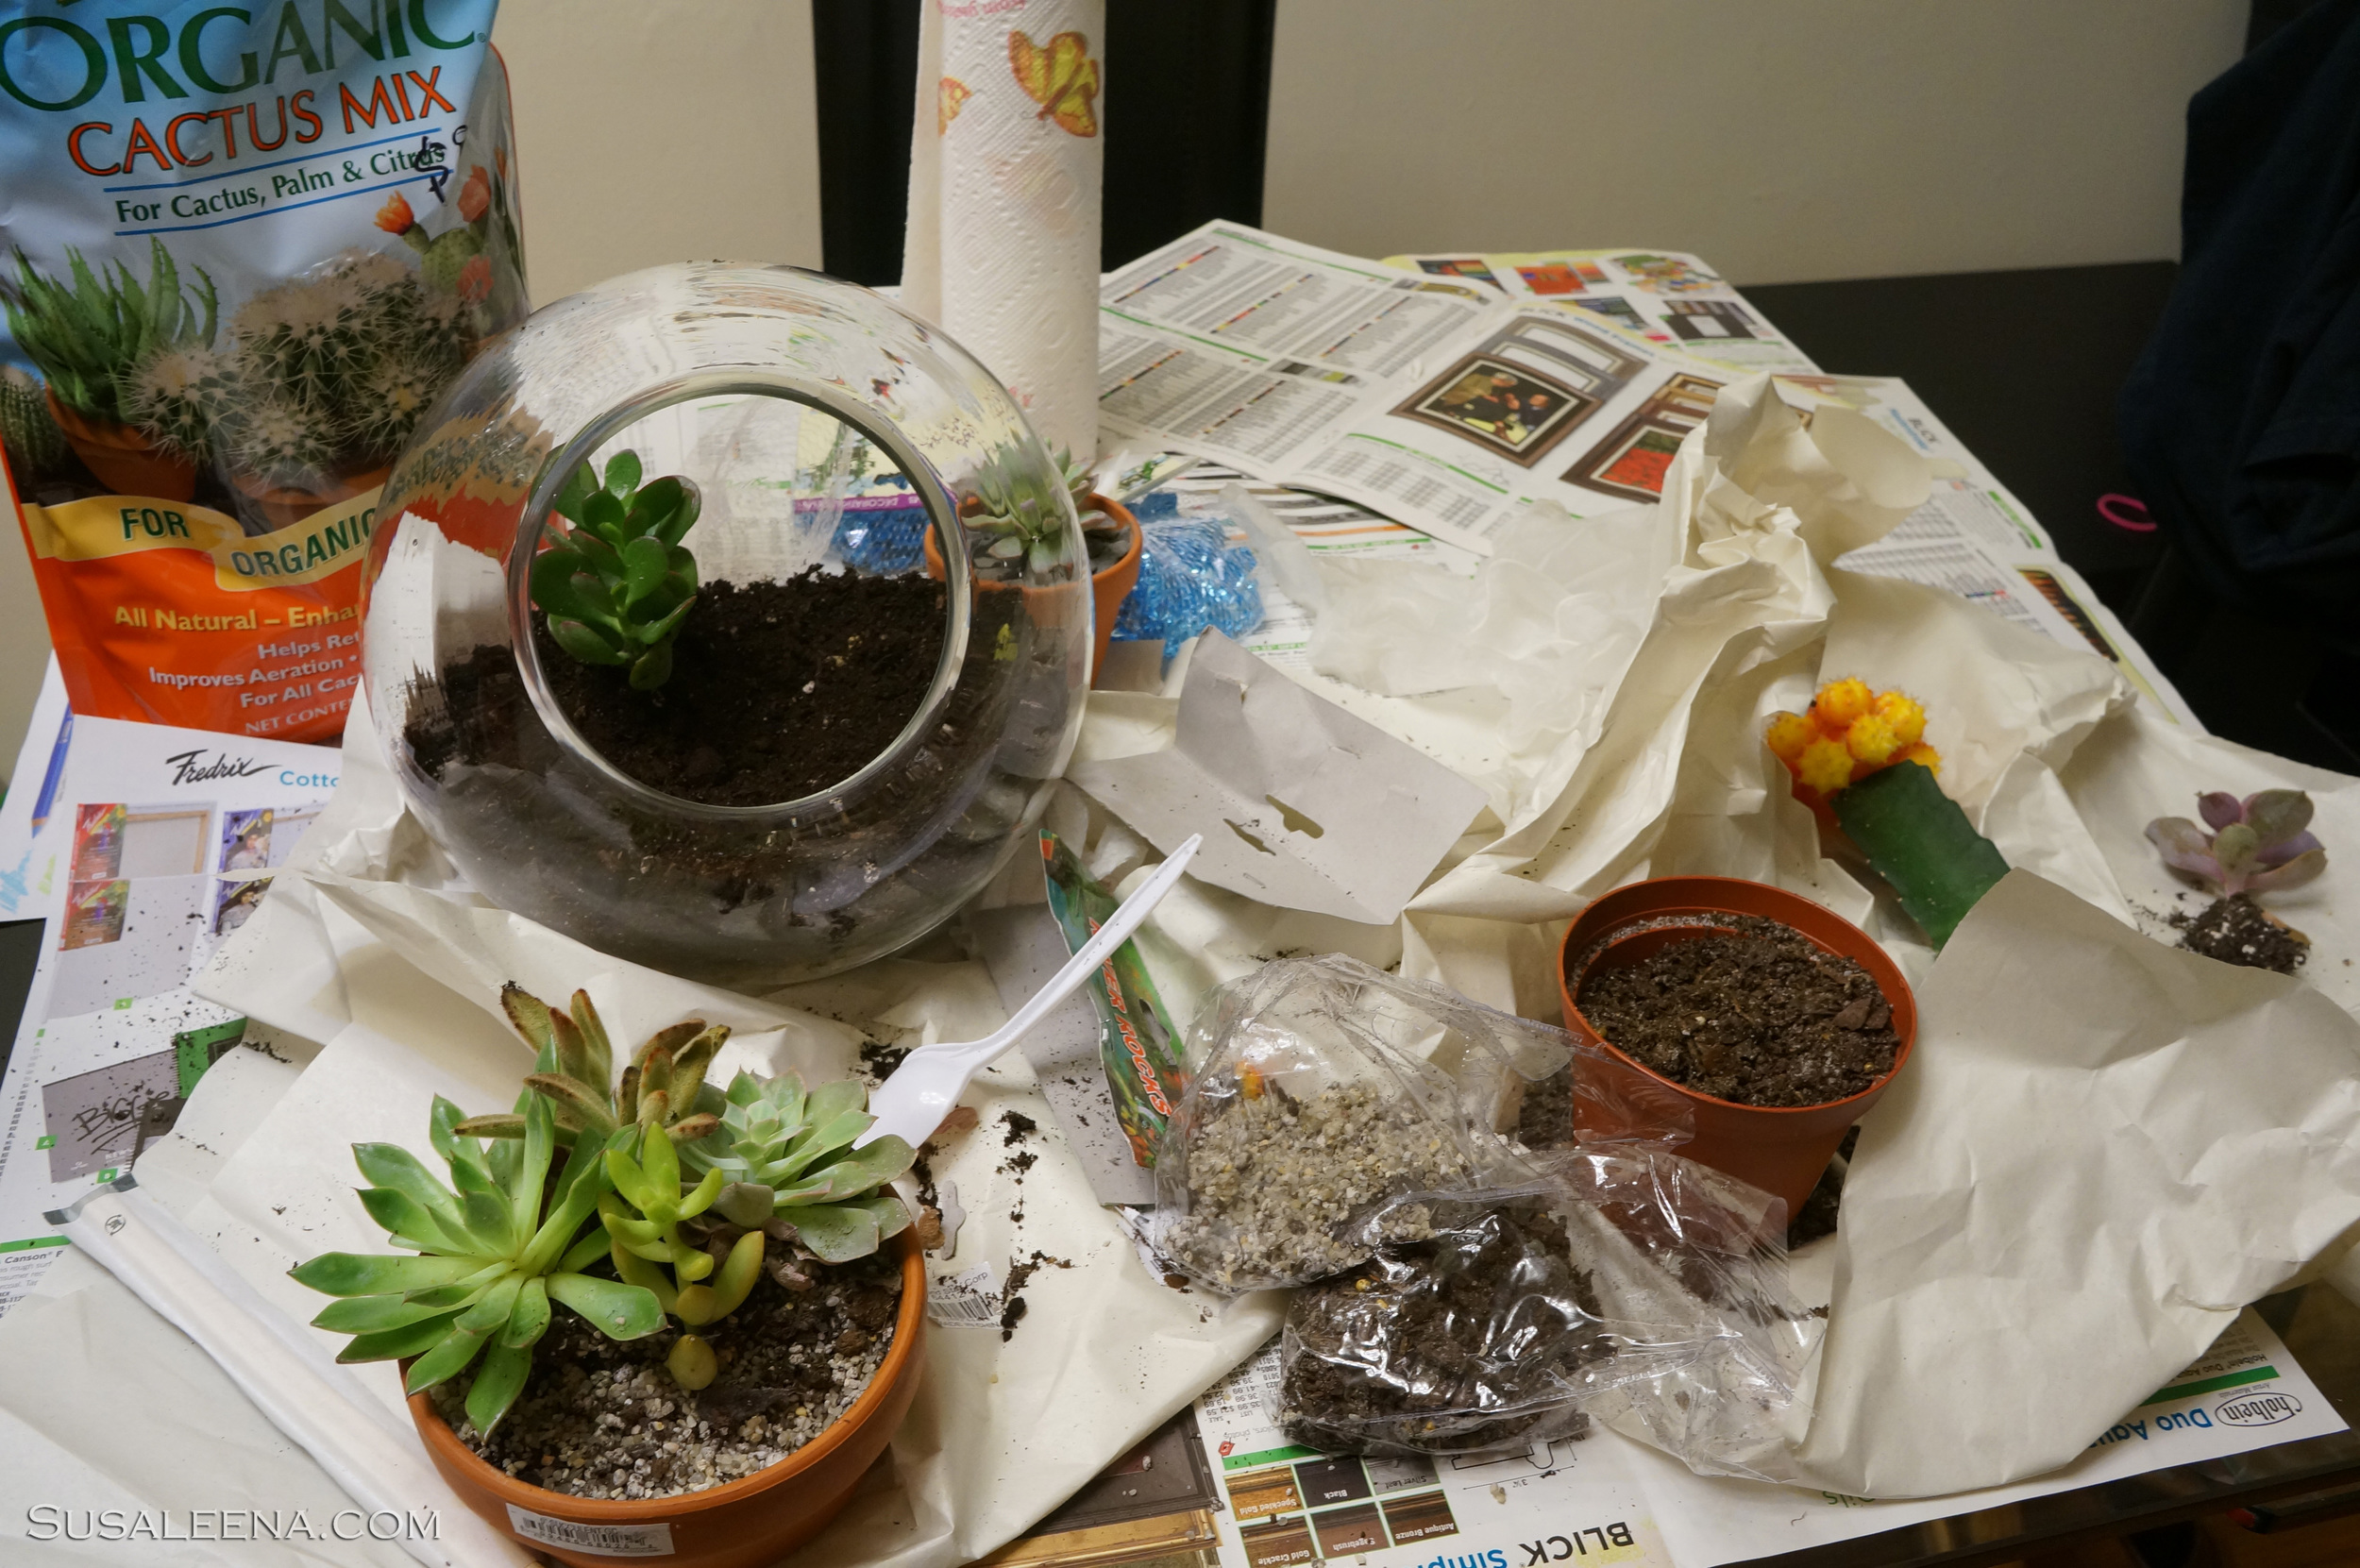 Filling up the glass globe. Don't worry about the mess..it will be ugly and messy until everything is planted and cleaned.